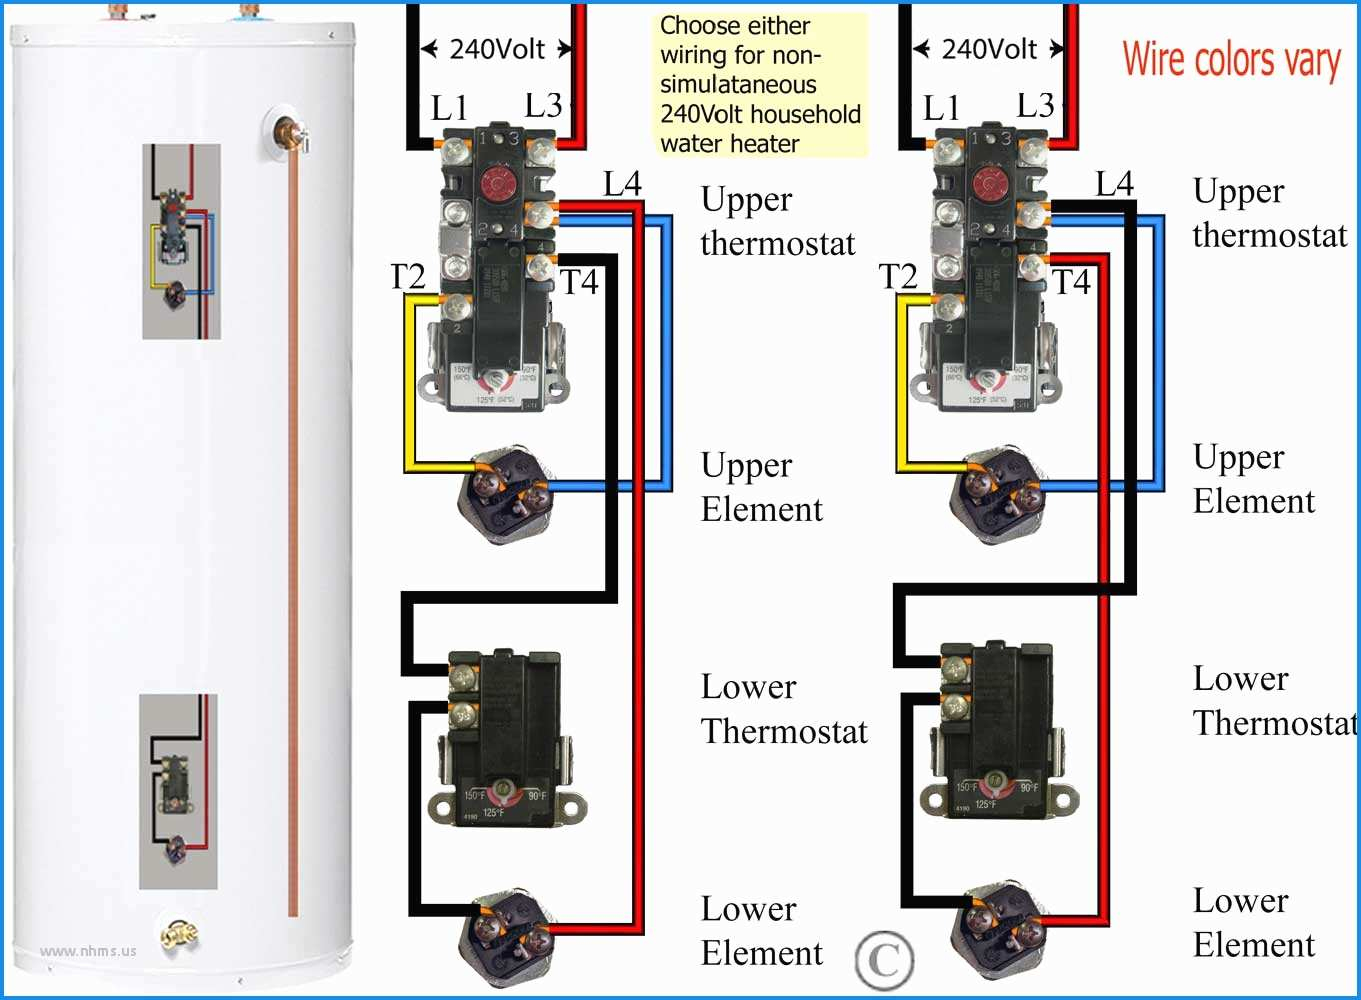 Electric Water Heater Thermostat Wiring Diagram   Wiring Diagram - Electric Water Heater Thermostat Wiring Diagram